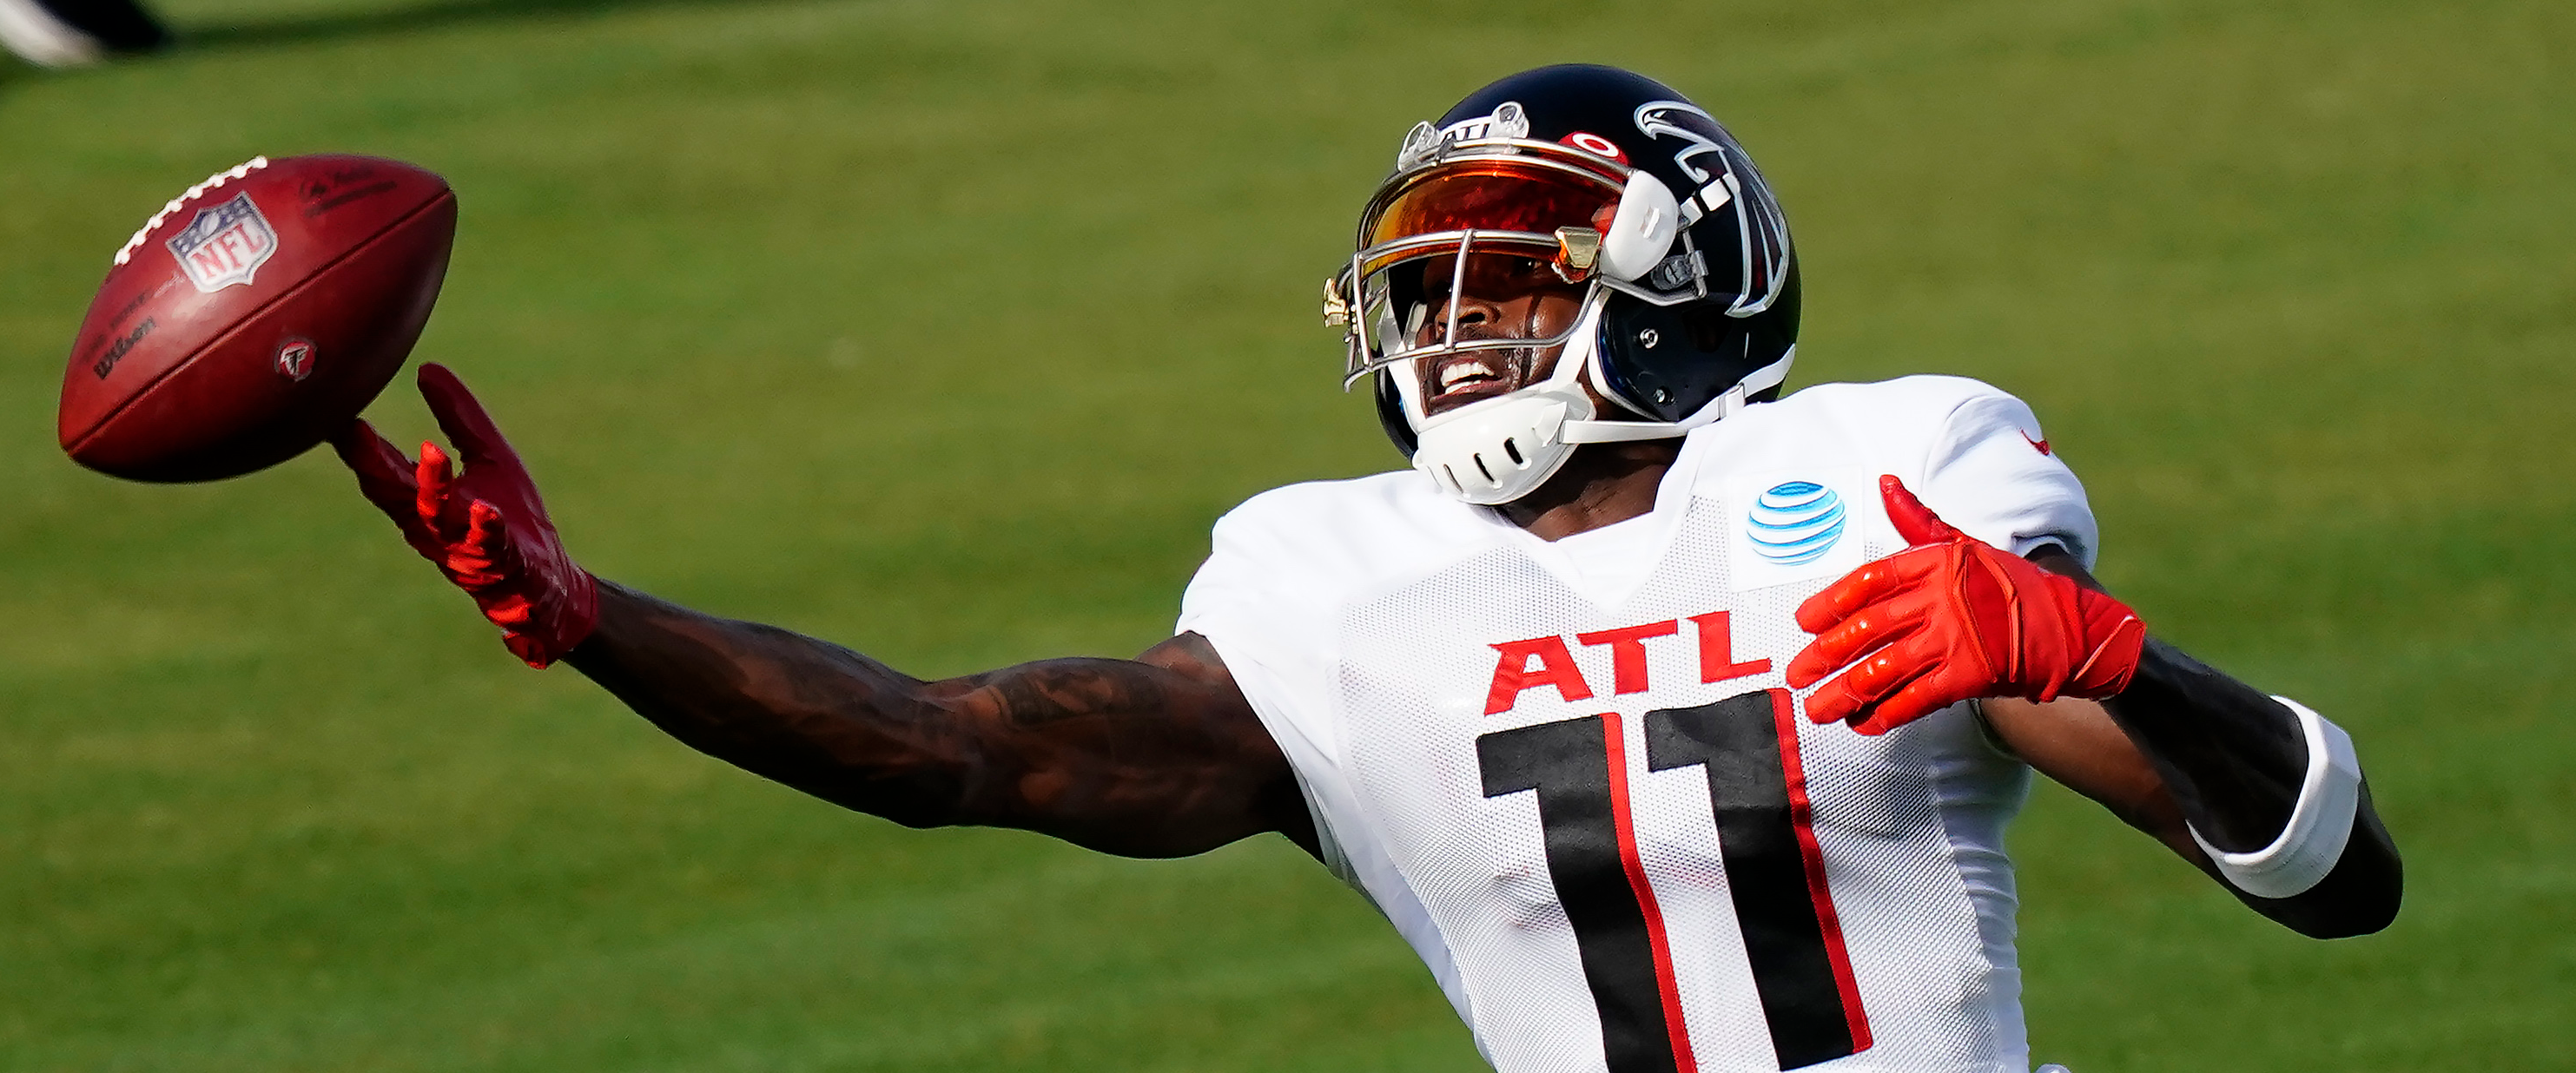 What are the chances the Titans trade for Julio Jones?